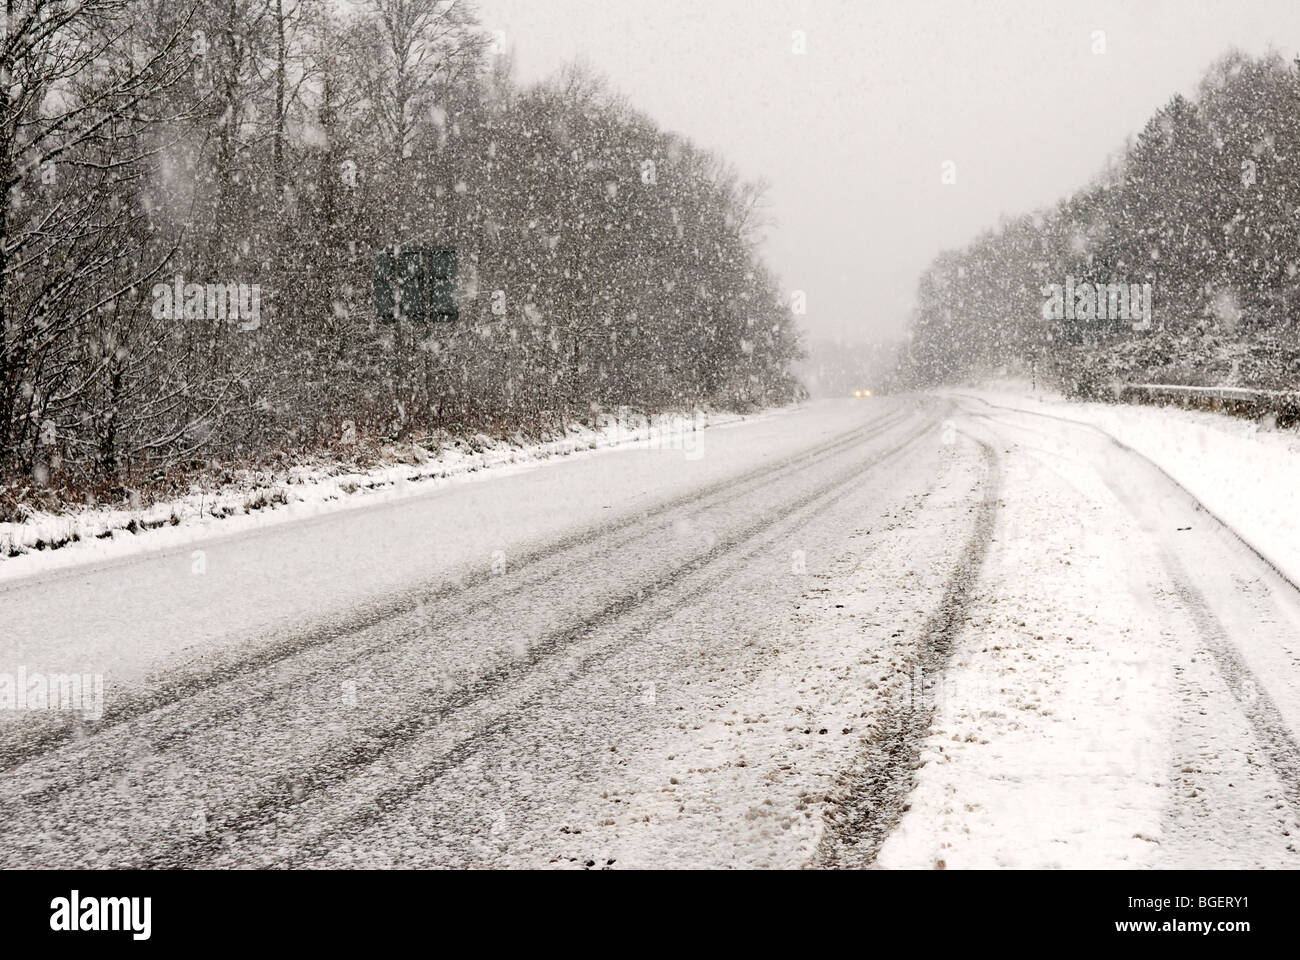 Road Sign Winter Conditions. - Stock Image